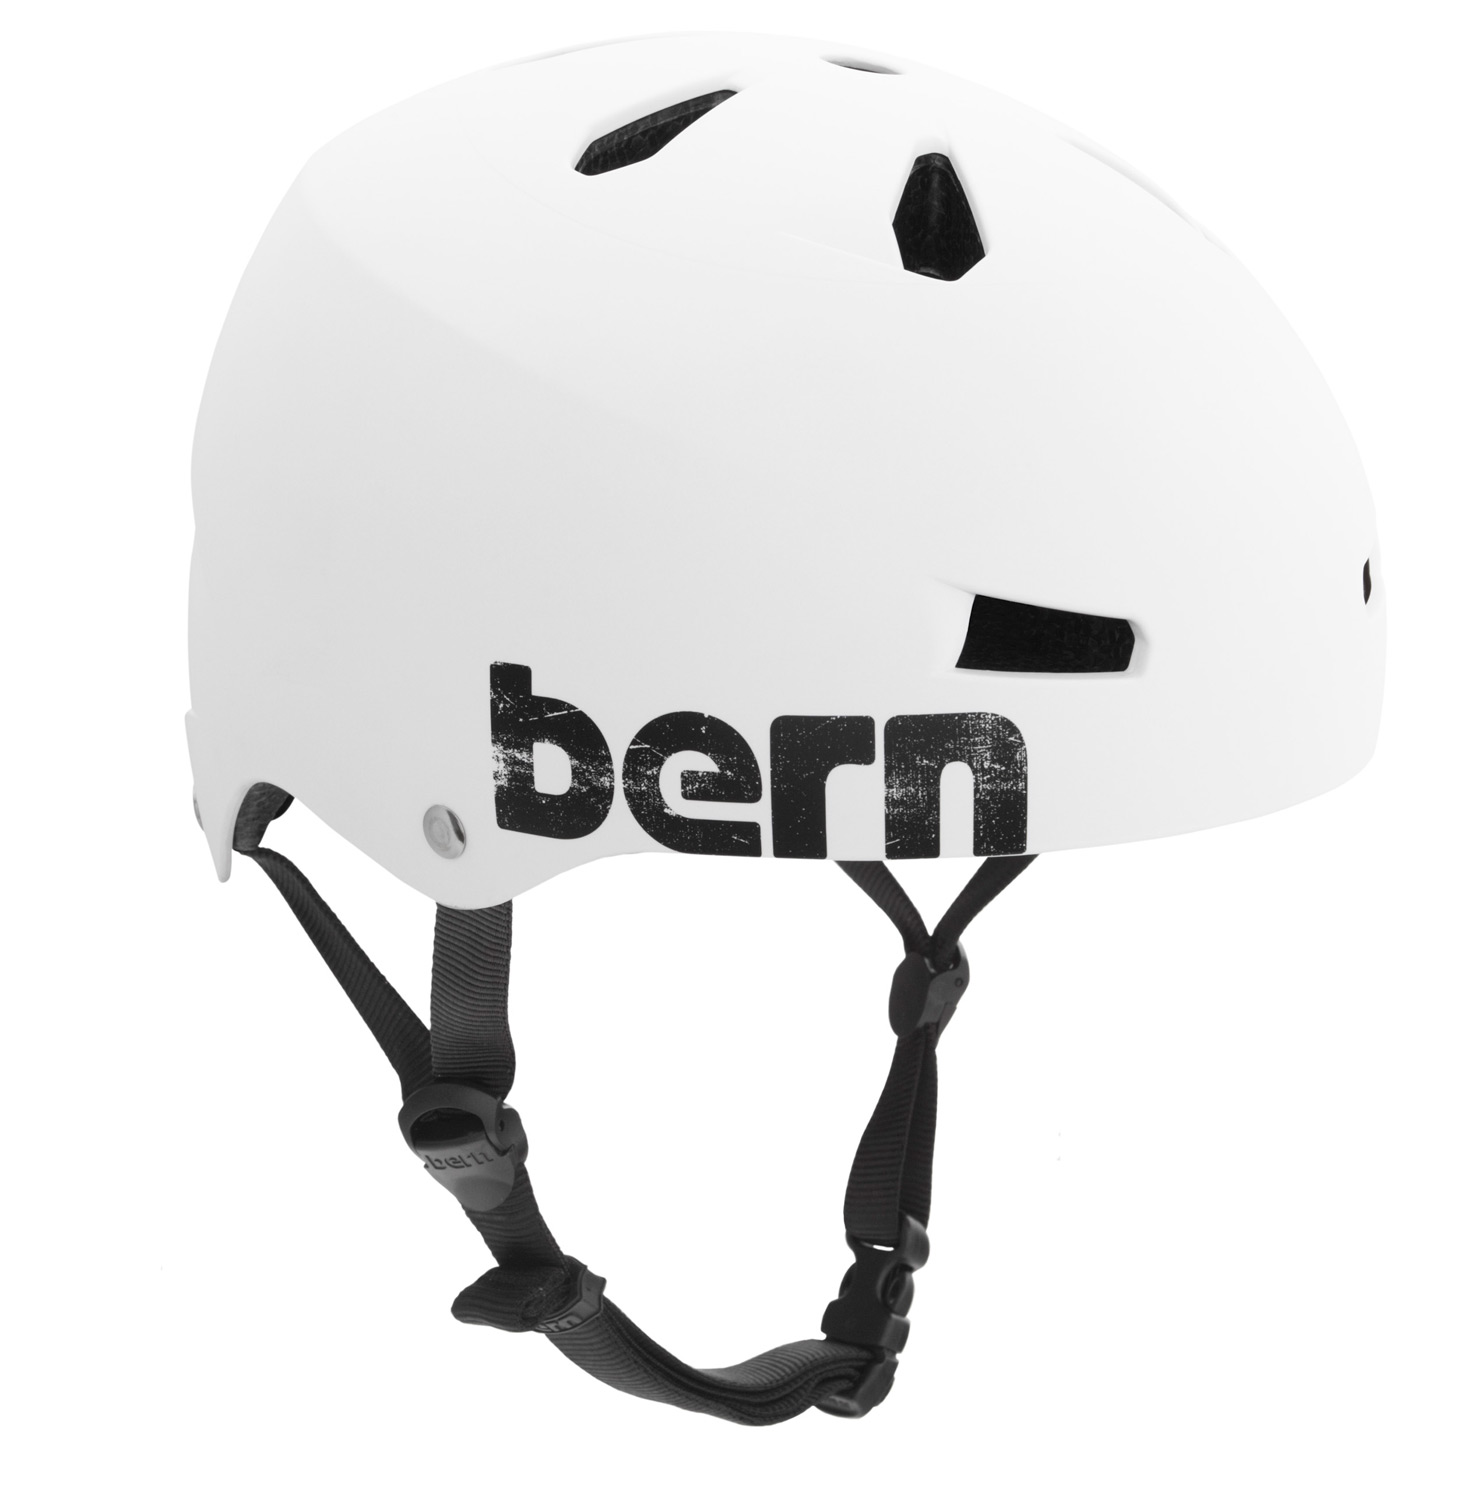 Ski The Macon bike helmet takes skate style to your everday commute. Core clean lines and durable construction team up with a removable visor for protection against the sun and inclement weather. Bern's All Season liner system allows you to use the Macon on your snowboard, skis or bike. EPS hard foam meets ASTM F 2040 and EN 1077B standards for snow and ski, CPSC and EN 1078 standards for bike and skate. - $32.95